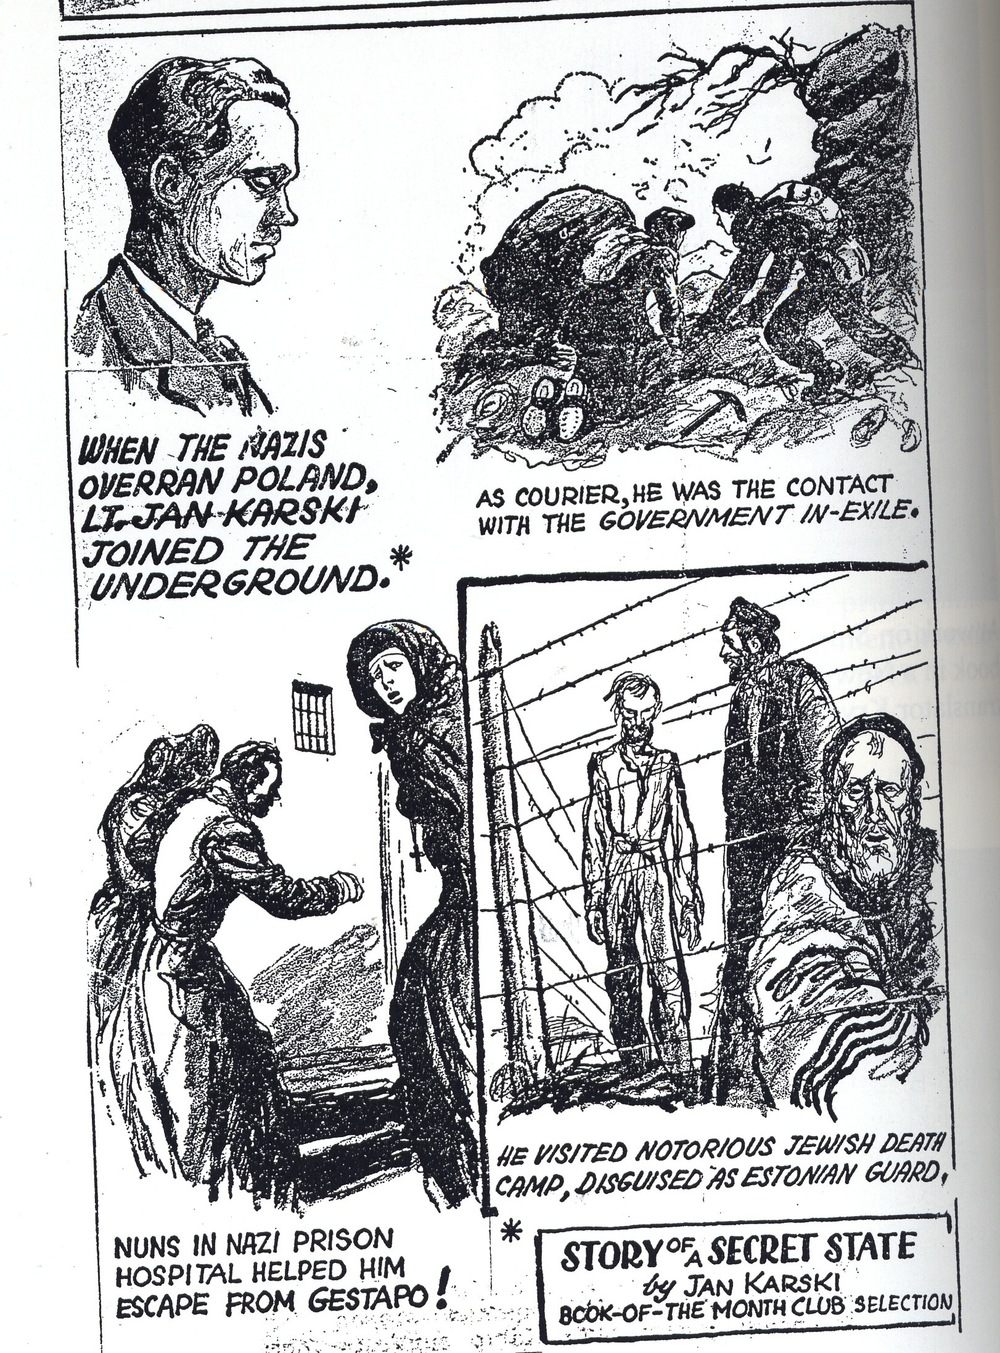 "Click photo to download. Caption: This cartoon by William Sharp was used to advertise Jan Karski's 1944 book, ""Story of a Secret State,"" which helped alert the American public about Nazi atrocities against the Jews. Credit: Courtesy of The David S. Wyman Institute for Holocaust Studies.                 0     0     1     8     44     JNS     1     1     51     14.0                            Normal     0                     false     false     false         EN-US     JA     X-NONE                                                                                                                                                                                                                                                                                                                                                                                                                                                                                                                                                                                                                                                                                                                    /* Style Definitions */ table.MsoNormalTable 	{mso-style-name:""Table Normal""; 	mso-tstyle-rowband-size:0; 	mso-tstyle-colband-size:0; 	mso-style-noshow:yes; 	mso-style-priority:99; 	mso-style-parent:""""; 	mso-padding-alt:0in 5.4pt 0in 5.4pt; 	mso-para-margin:0in; 	mso-para-margin-bottom:.0001pt; 	mso-pagination:widow-orphan; 	font-size:12.0pt; 	font-family:Cambria; 	mso-ascii-font-family:Cambria; 	mso-ascii-theme-font:minor-latin; 	mso-hansi-font-family:Cambria; 	mso-hansi-theme-font:minor-latin;}"